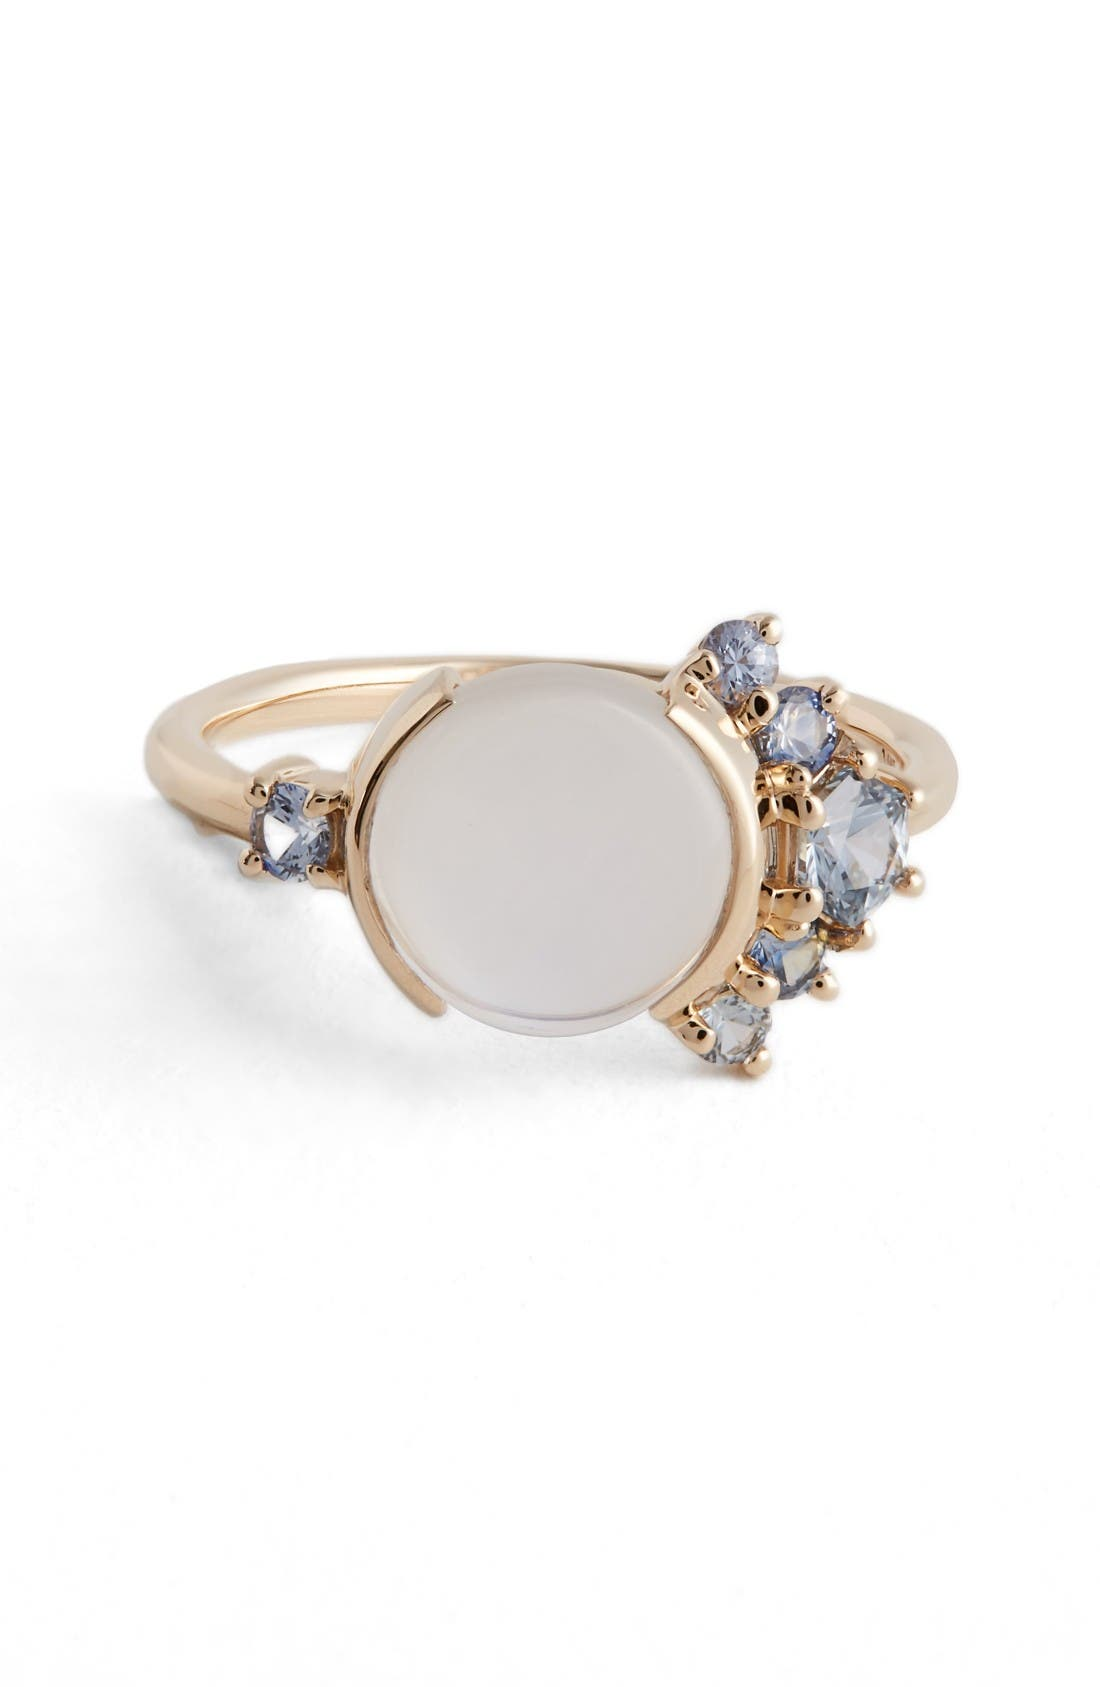 Main Image - MOCIUN Moonstone & Sapphire Ring (Nordstrom Exclusive)